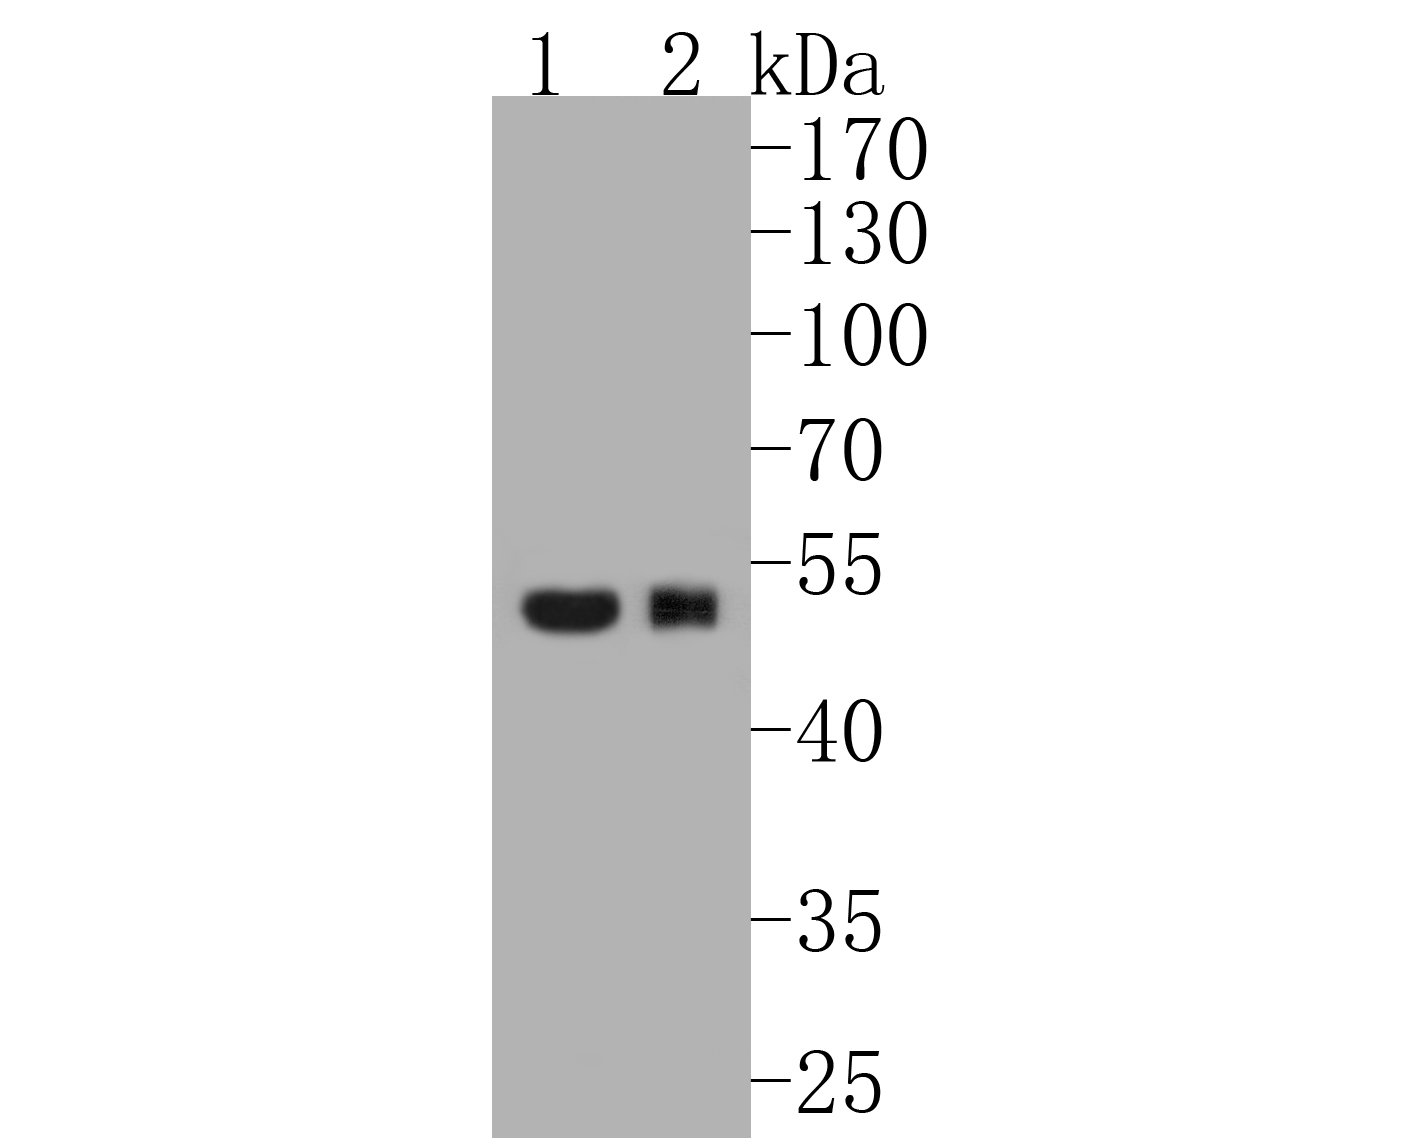 Western blot analysis of Phospho-GATA3 (S308) on different lysates. Proteins were transferred to a PVDF membrane and blocked with 5% BSA in PBS for 1 hour at room temperature. The primary antibody (ET1609-17, 1/500) was used in 5% BSA at room temperature for 2 hours. Goat Anti-Rabbit IgG - HRP Secondary Antibody (HA1001) at 1:5,000 dilution was used for 1 hour at room temperature. Positive control:  Lane 1: human skin tissue lysate Lane 2: Jurkat cell lysate